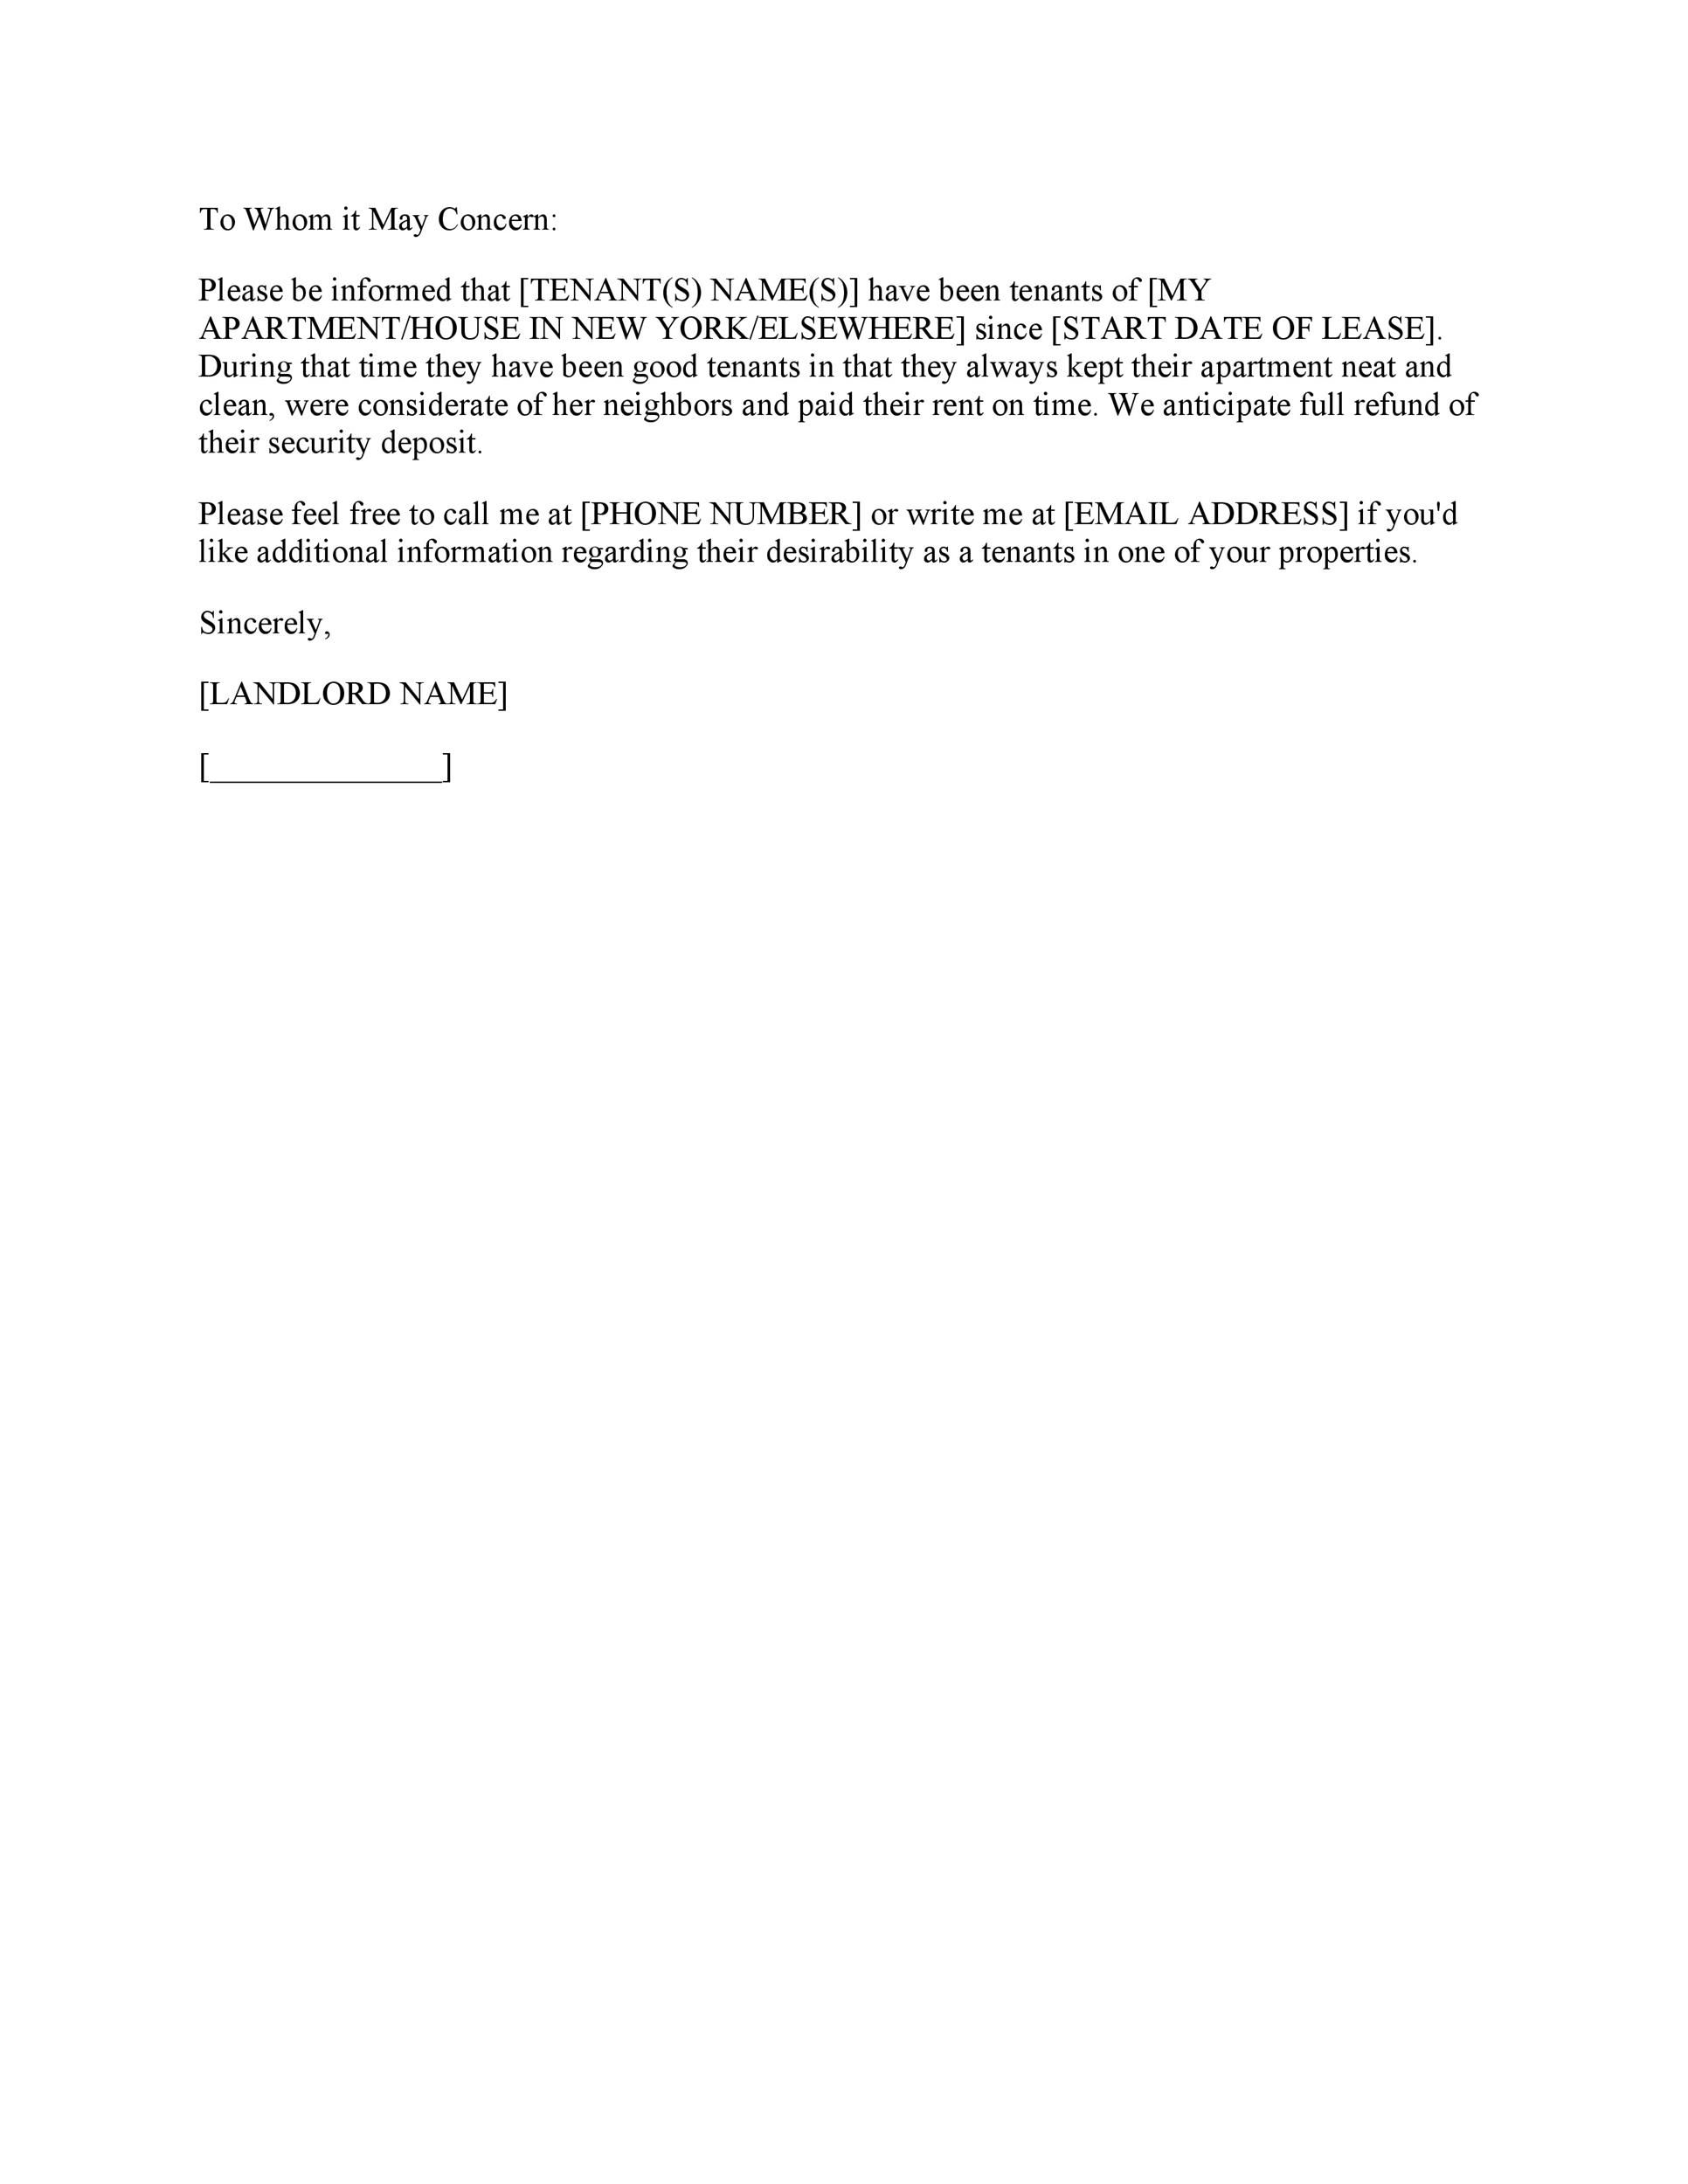 004 Breathtaking Free Reference Letter Template For Landlord High Definition  RentalFull